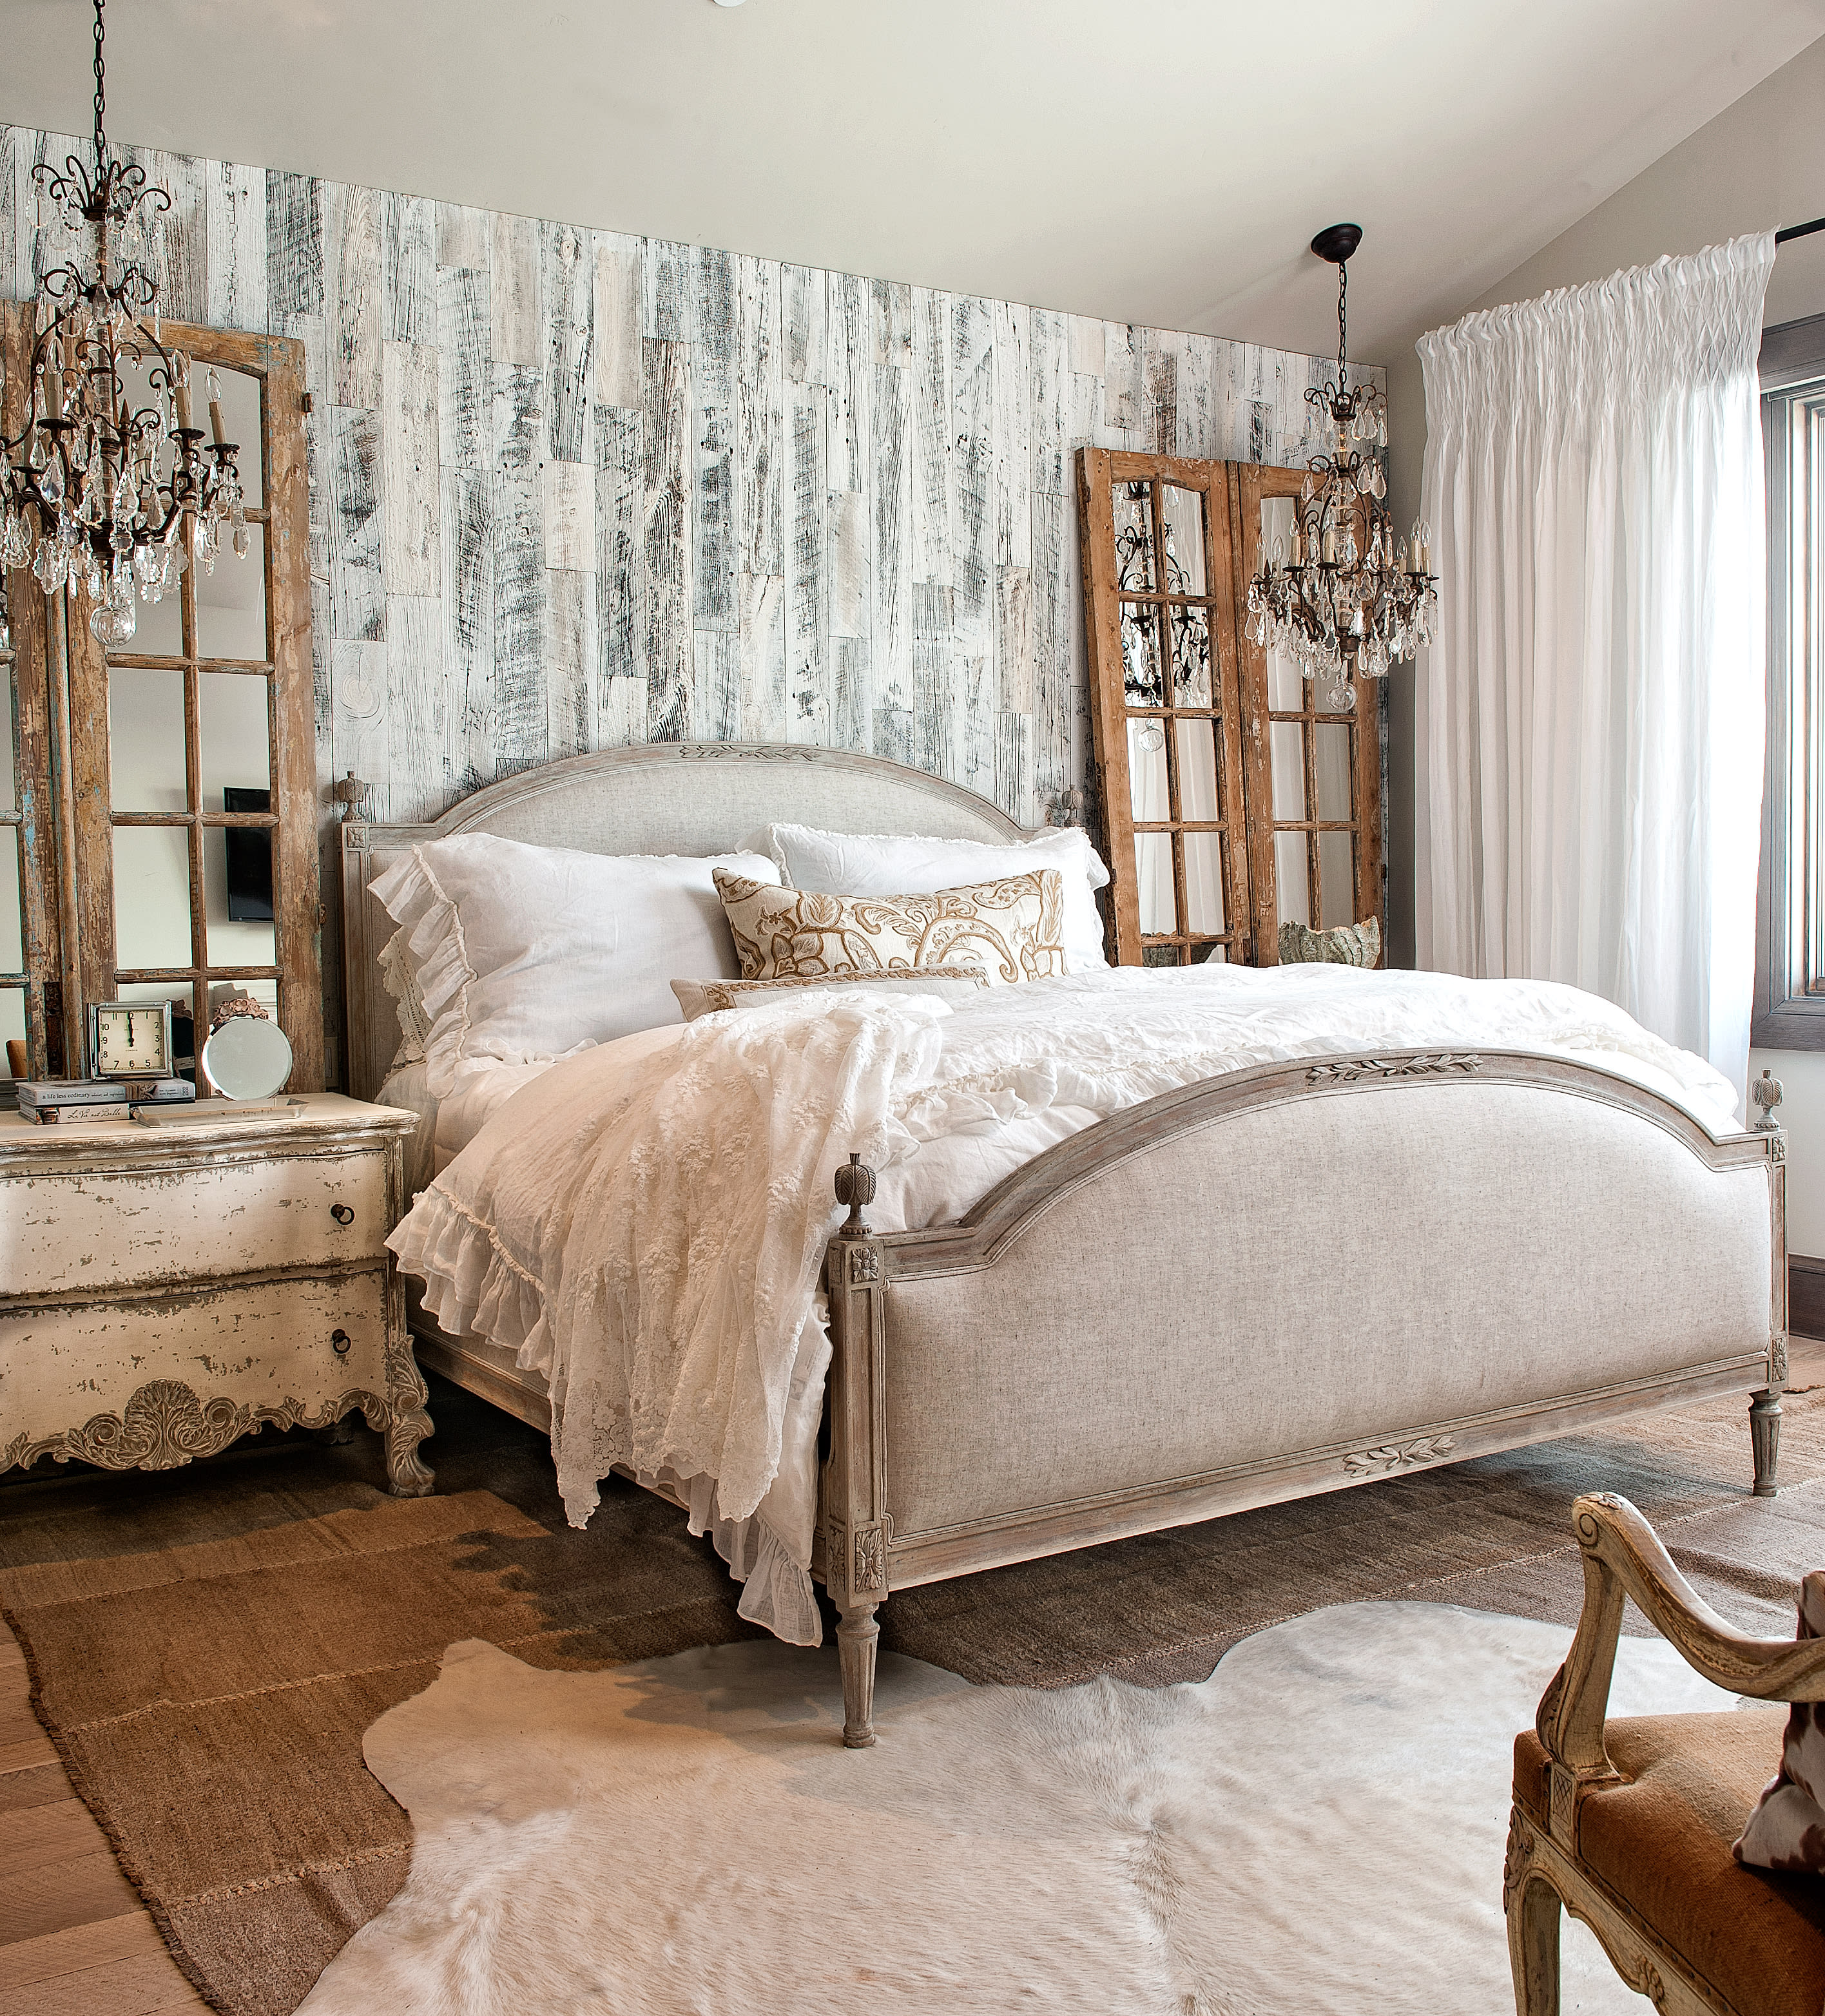 Eclectic maximalist bedroom design featuring a stikwood peel and stick reclaimed weathered wood accent wall.